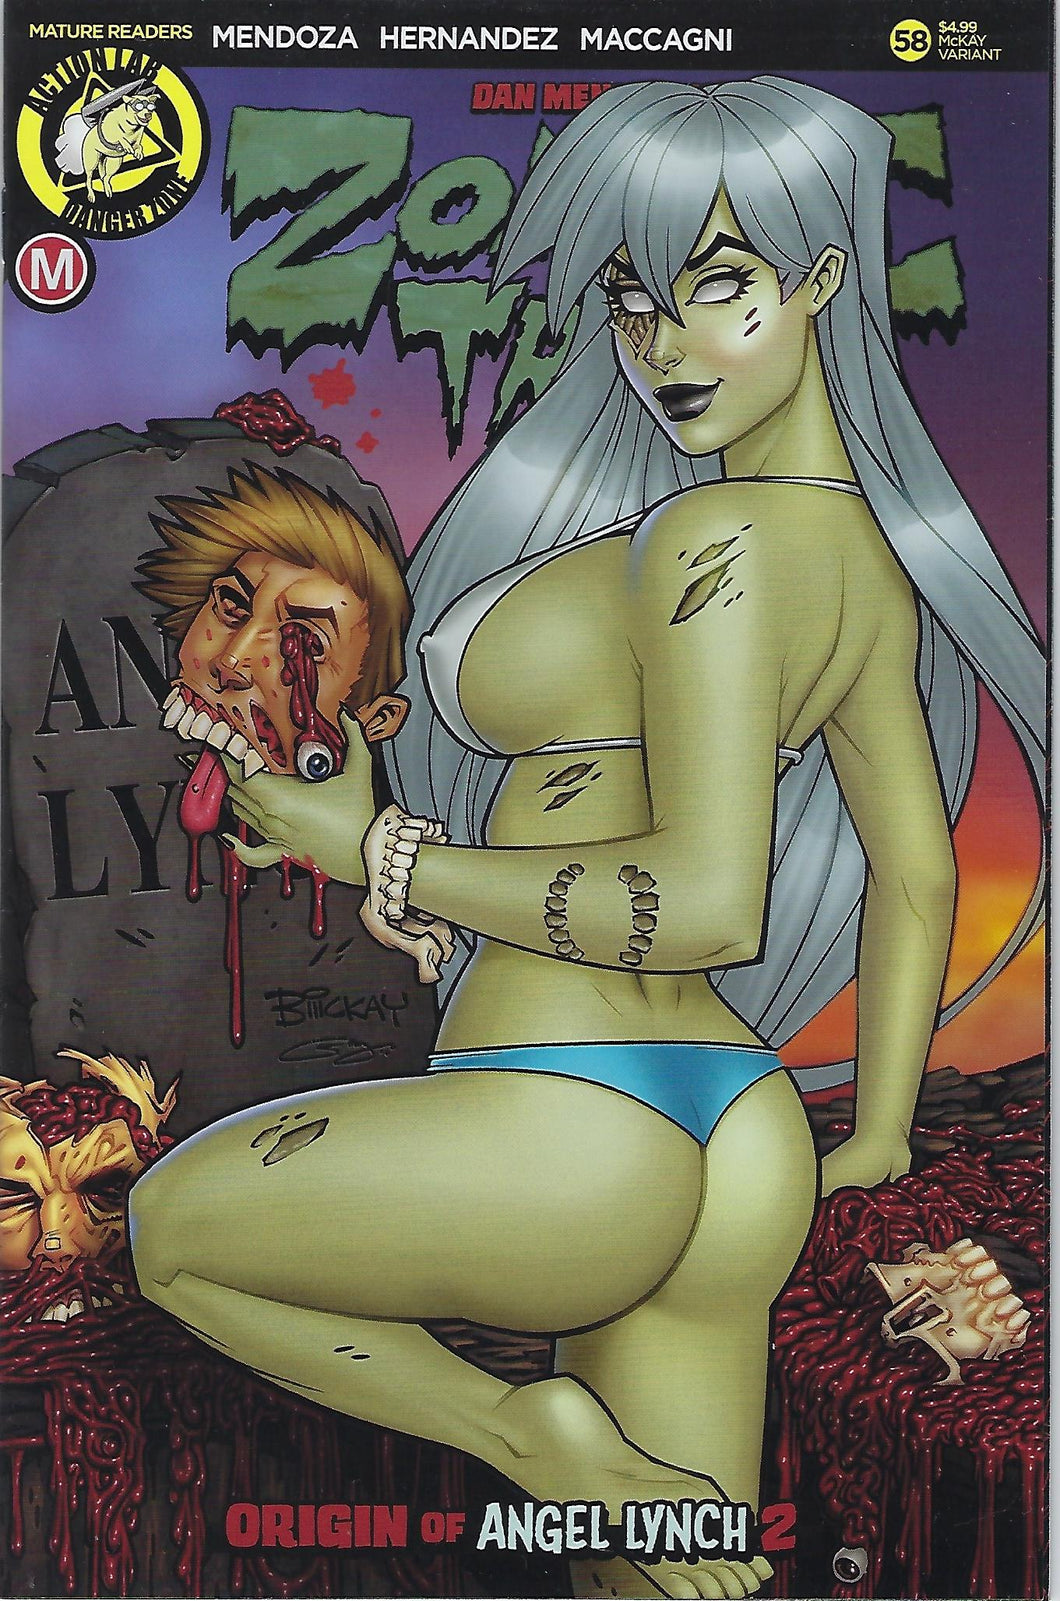 Zombie Tramp # 58 McKay Limited Edition Variant !!  NM